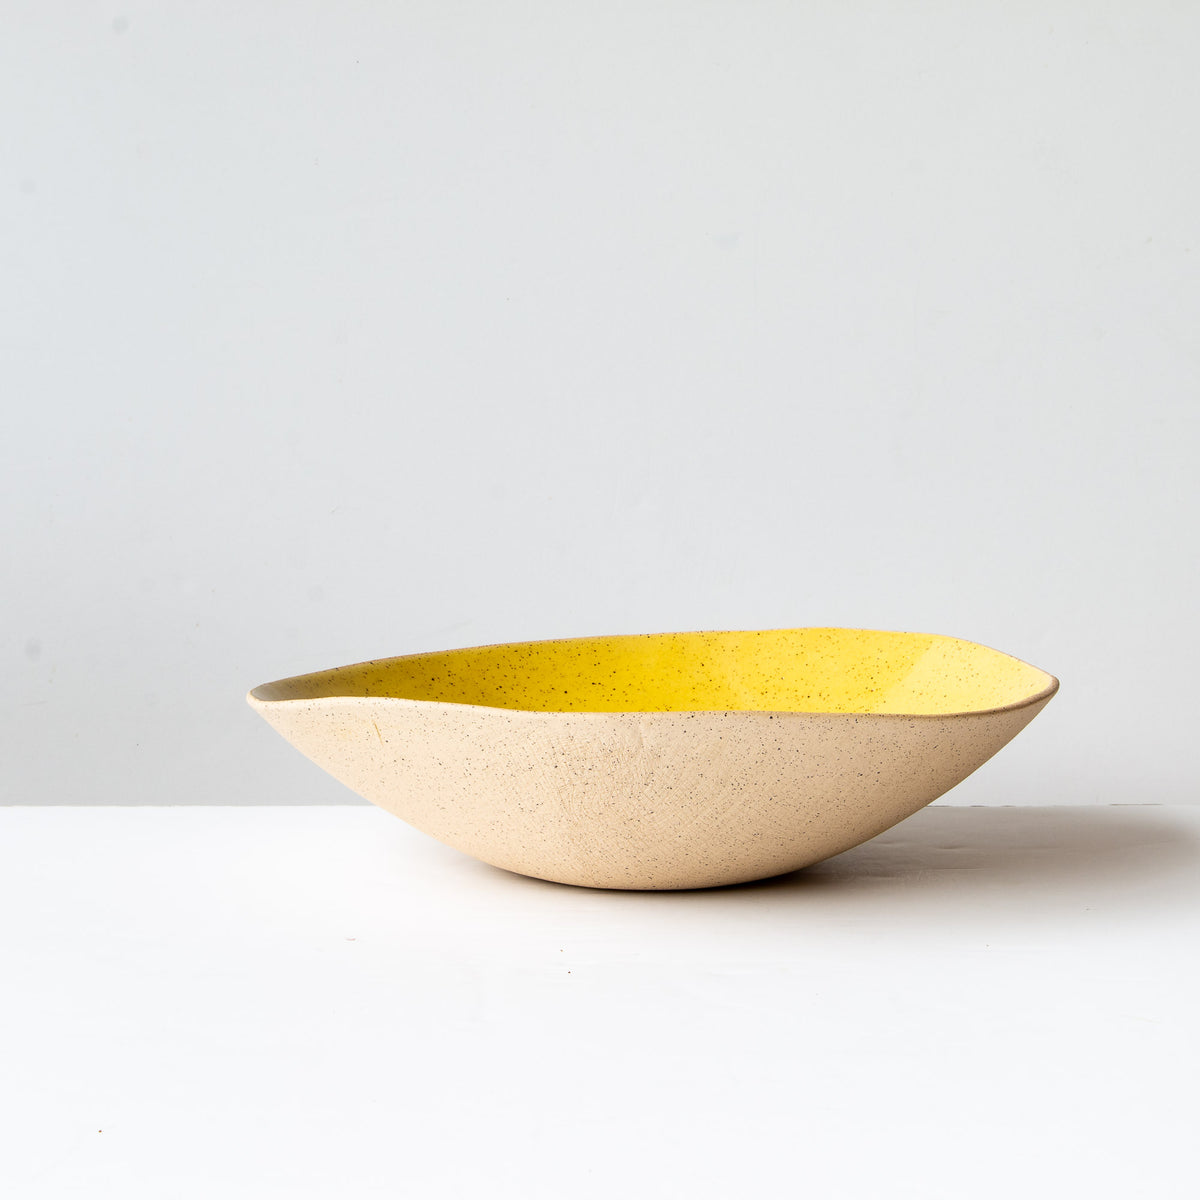 Profile View - Handcrafted Large Freckled Stoneware Fruit Bowl - Sold by Chic & Basta